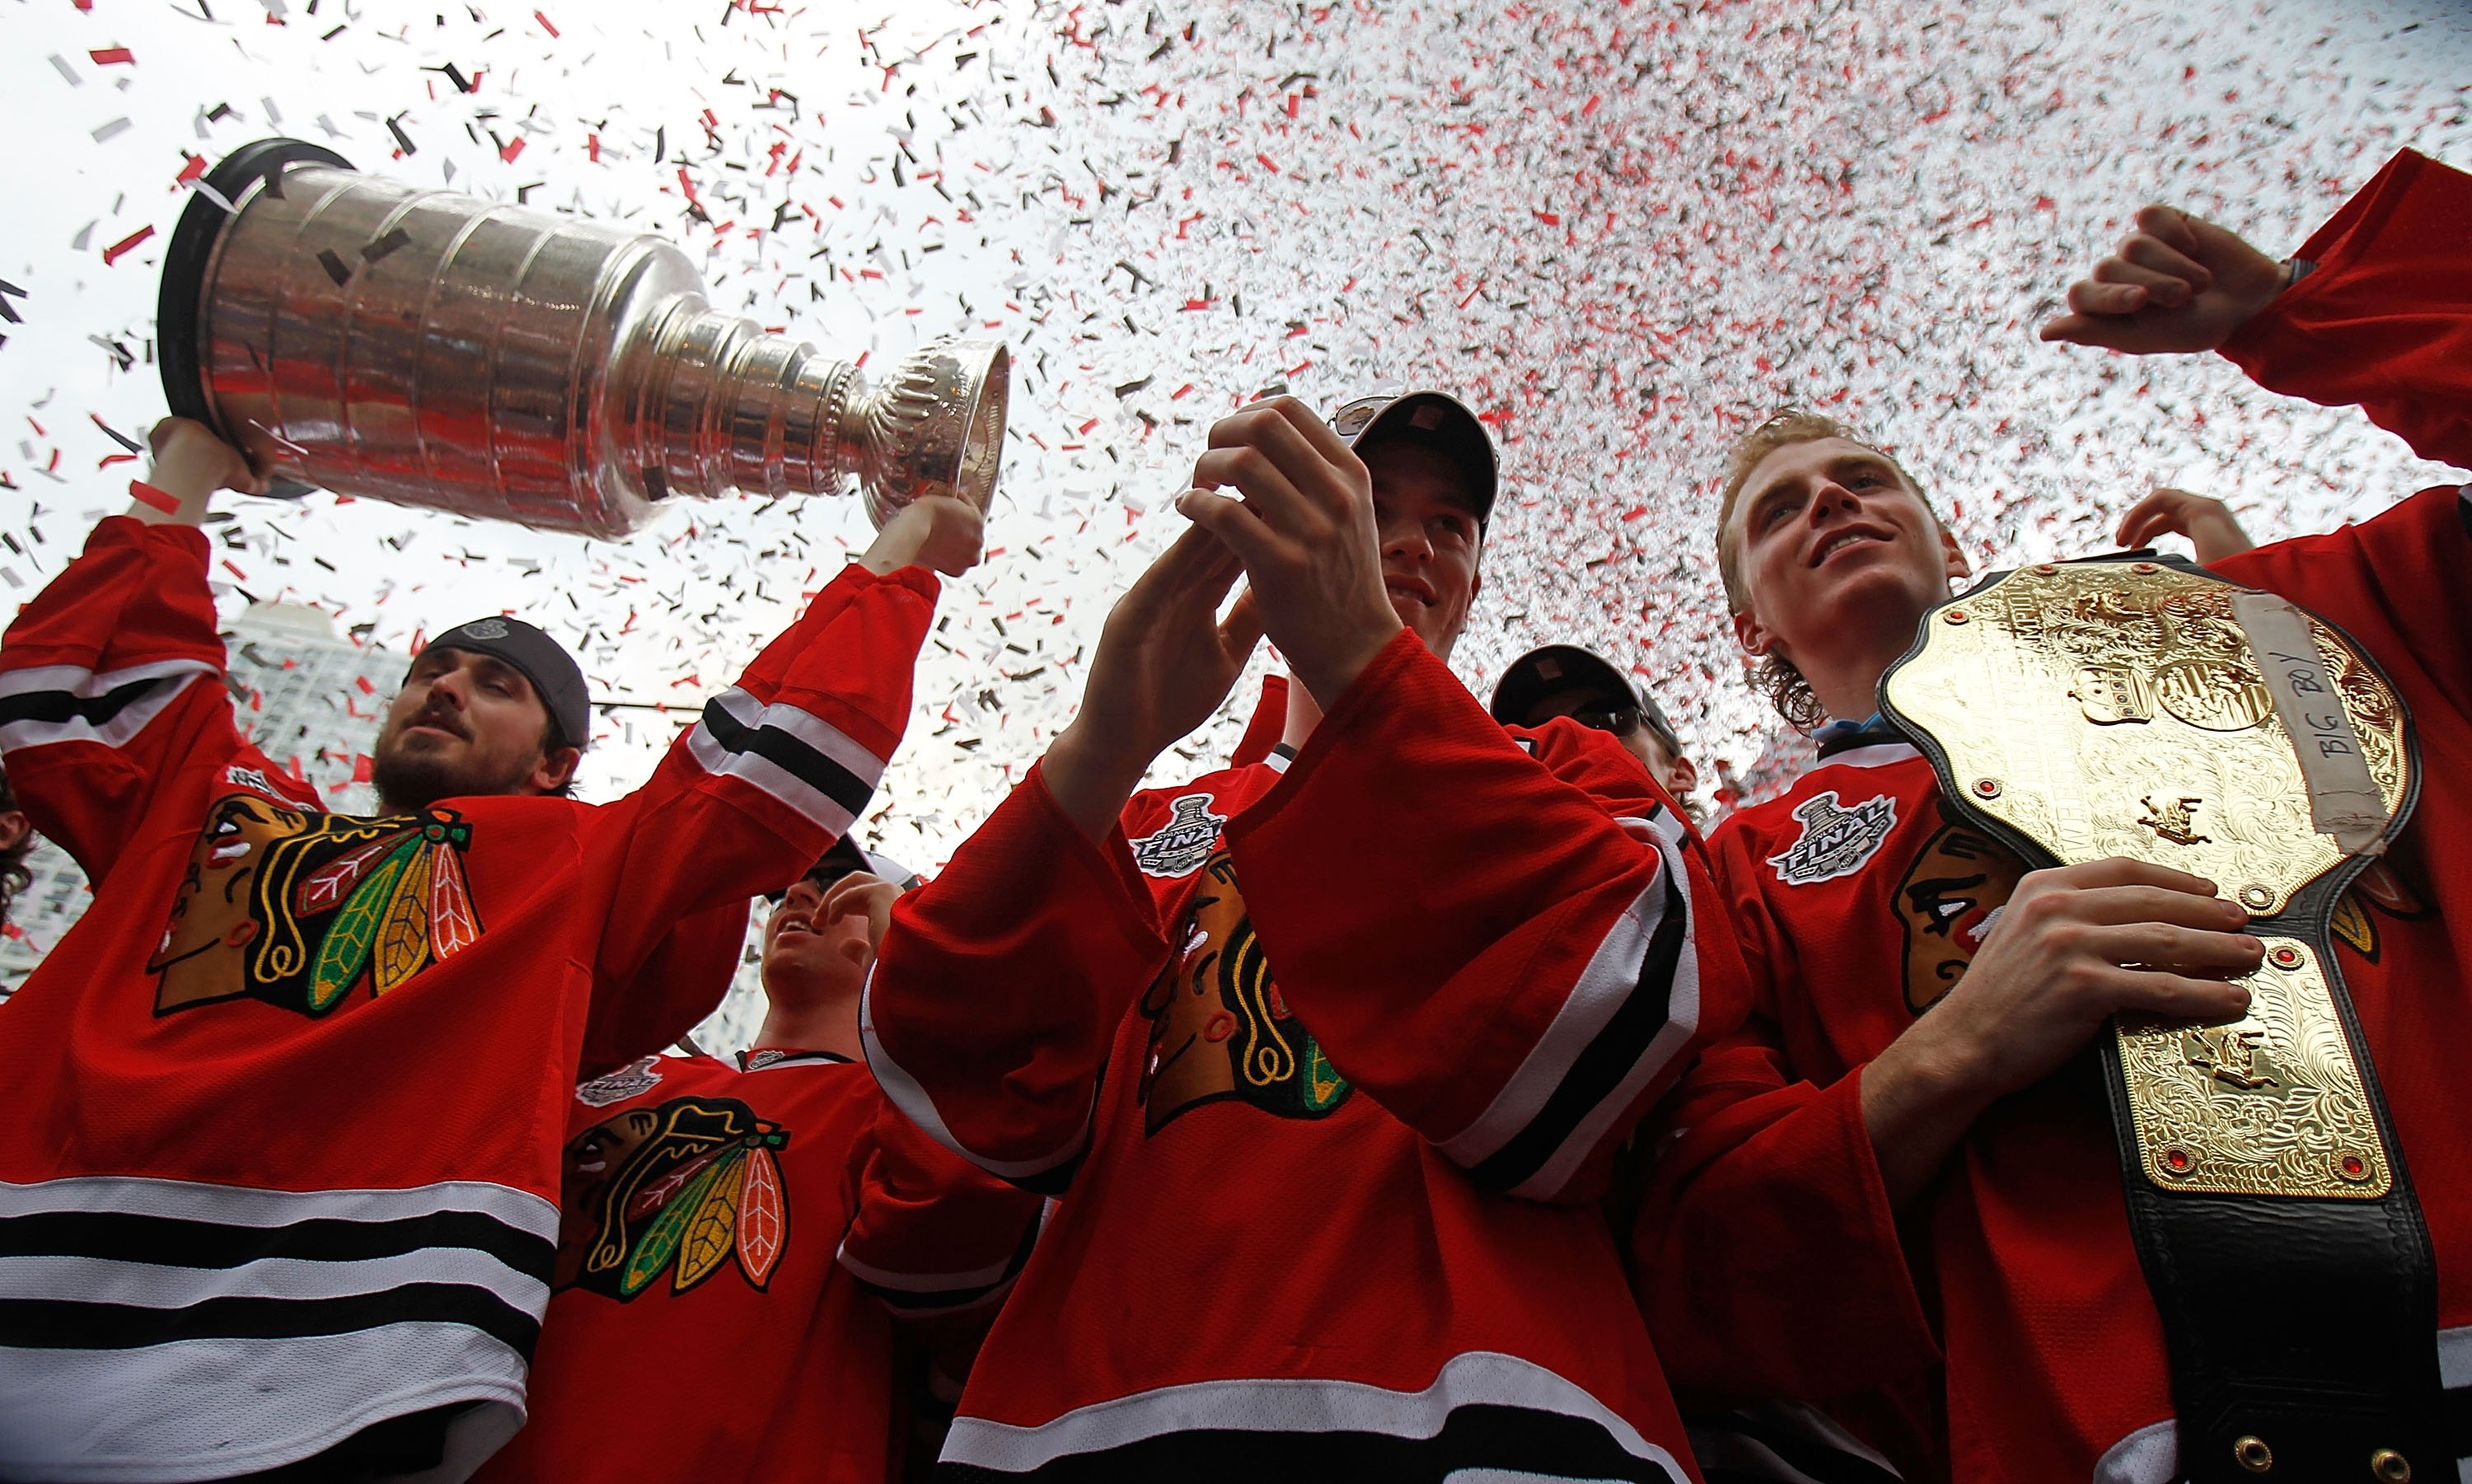 CHICAGO - JUNE 11: (L-R) Dave Bolland #36, Jonathan Toews #19, and Patrick Kane #88 celebrate with the crowd during the Chicago Blackhawks Stanley Cup victory parade and rally on June 11, 2010 in Chicago, Illinois. (Photo by Jonathan Daniel/Getty Images)